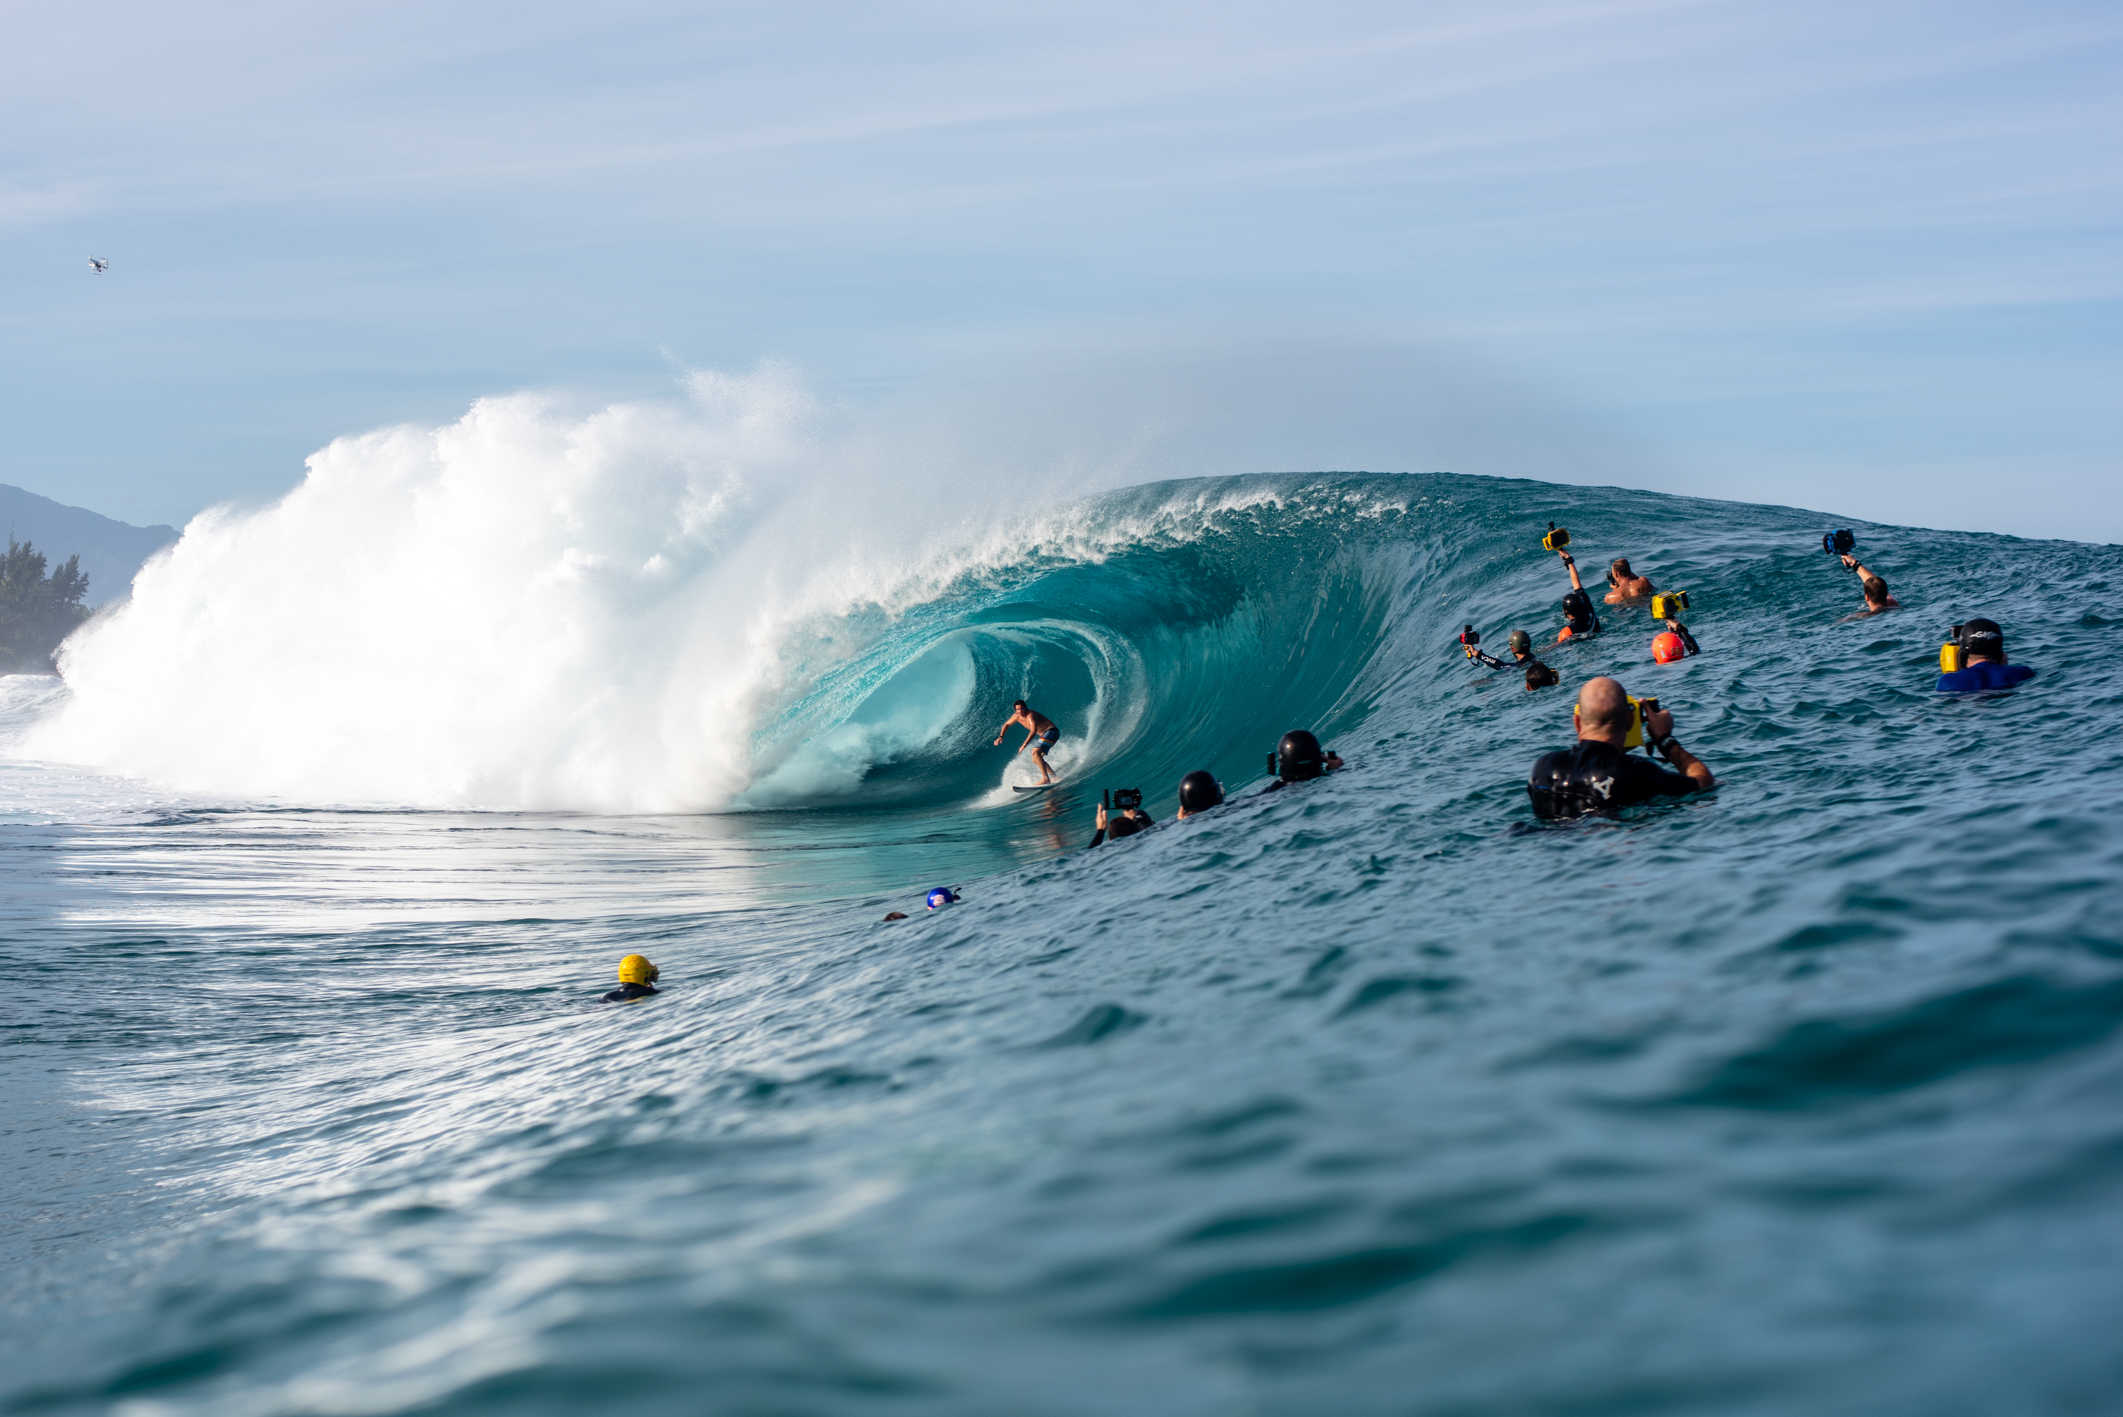 The line up of photographers at Pipe. And this was early season!